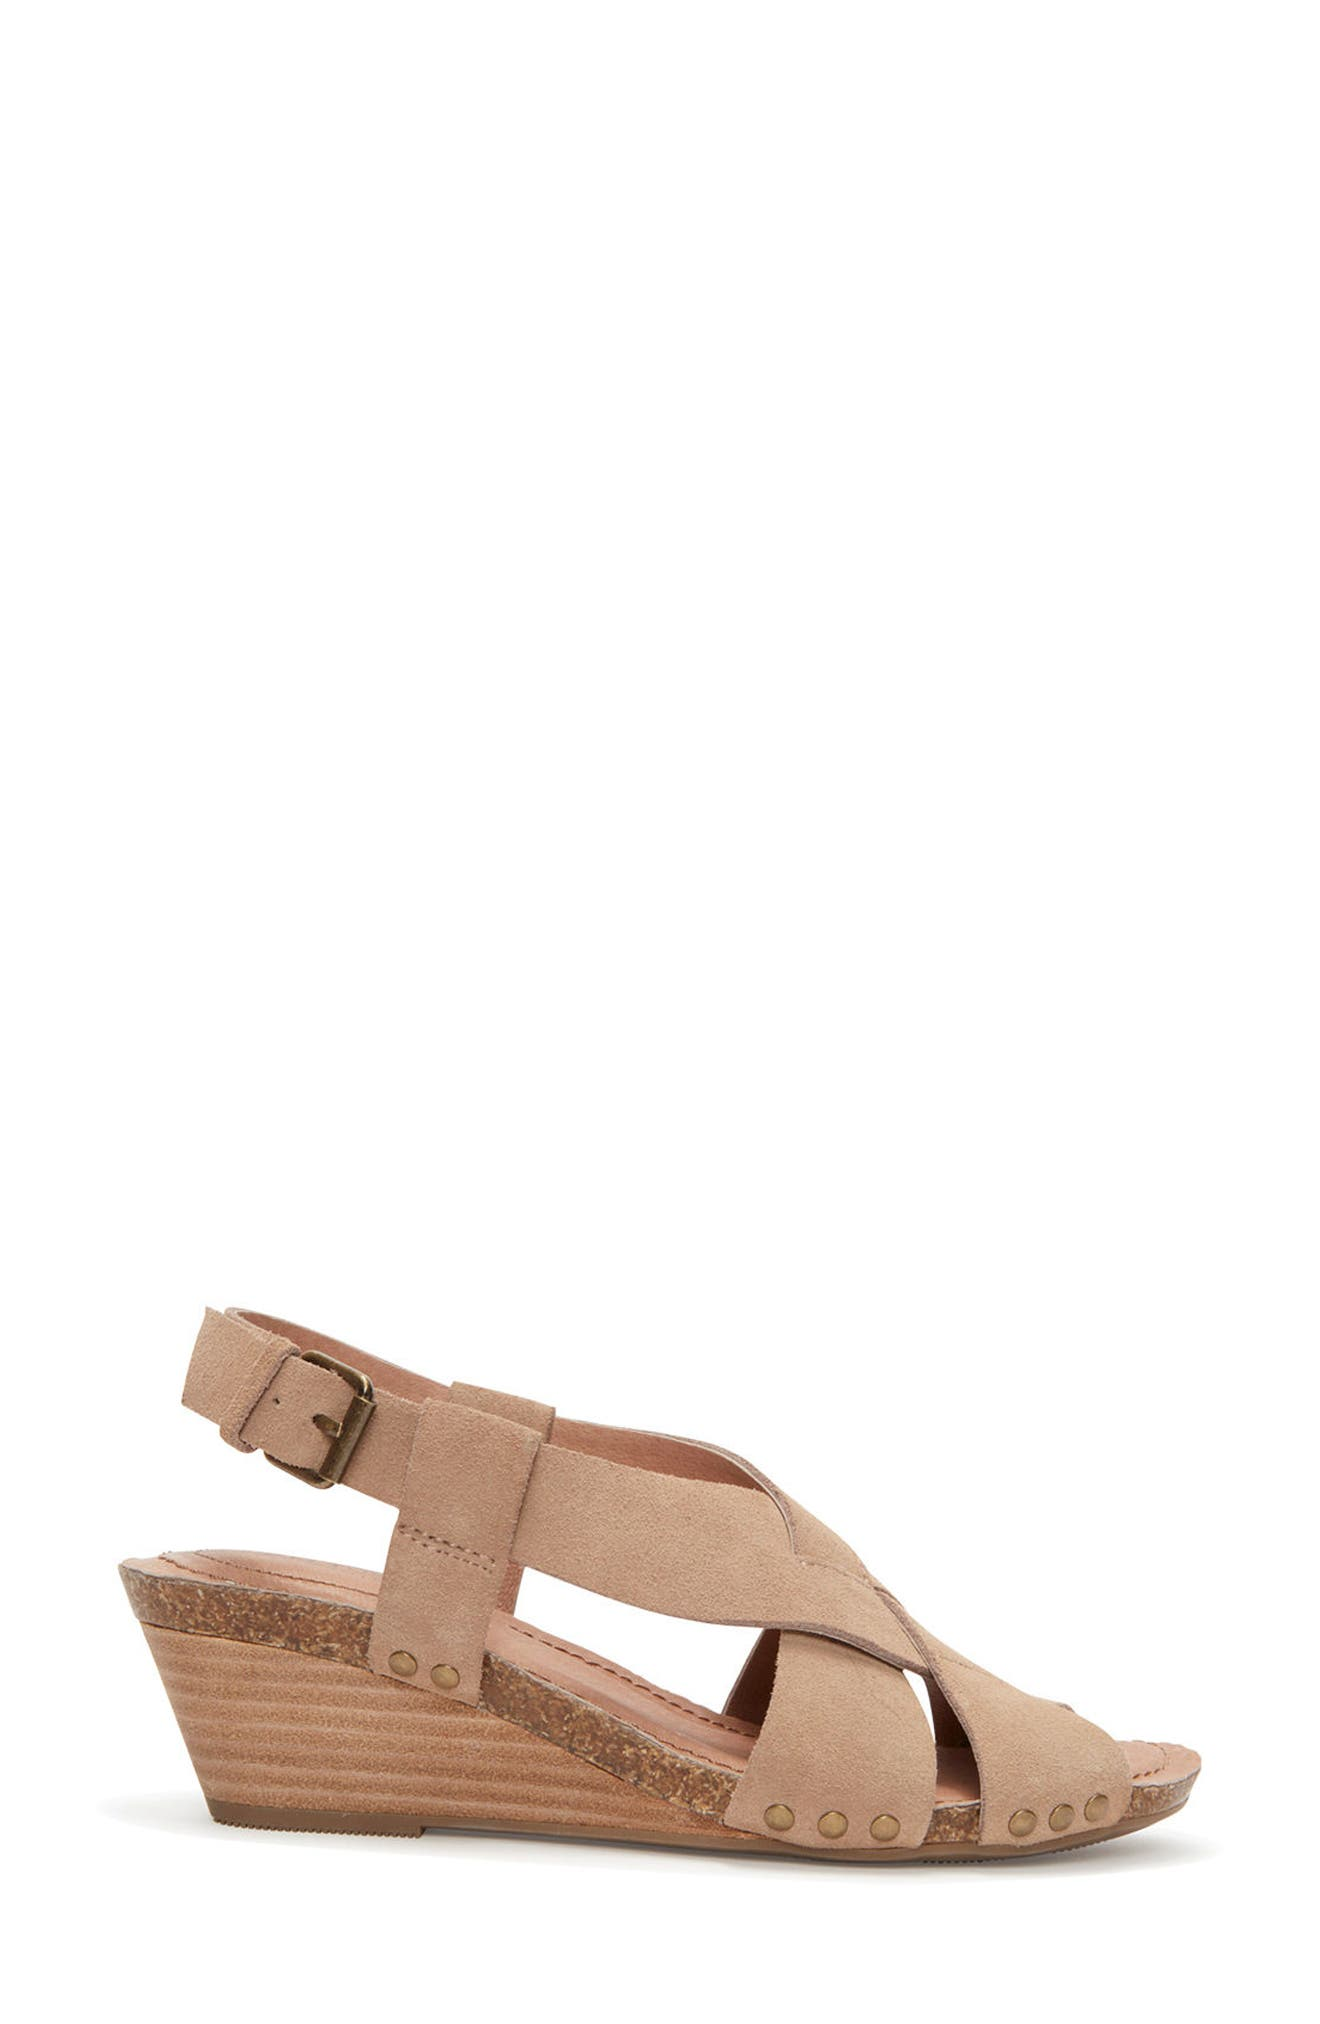 Adam Tucker Tarin Wedge Sandal,                             Alternate thumbnail 3, color,                             Rosewood Suede